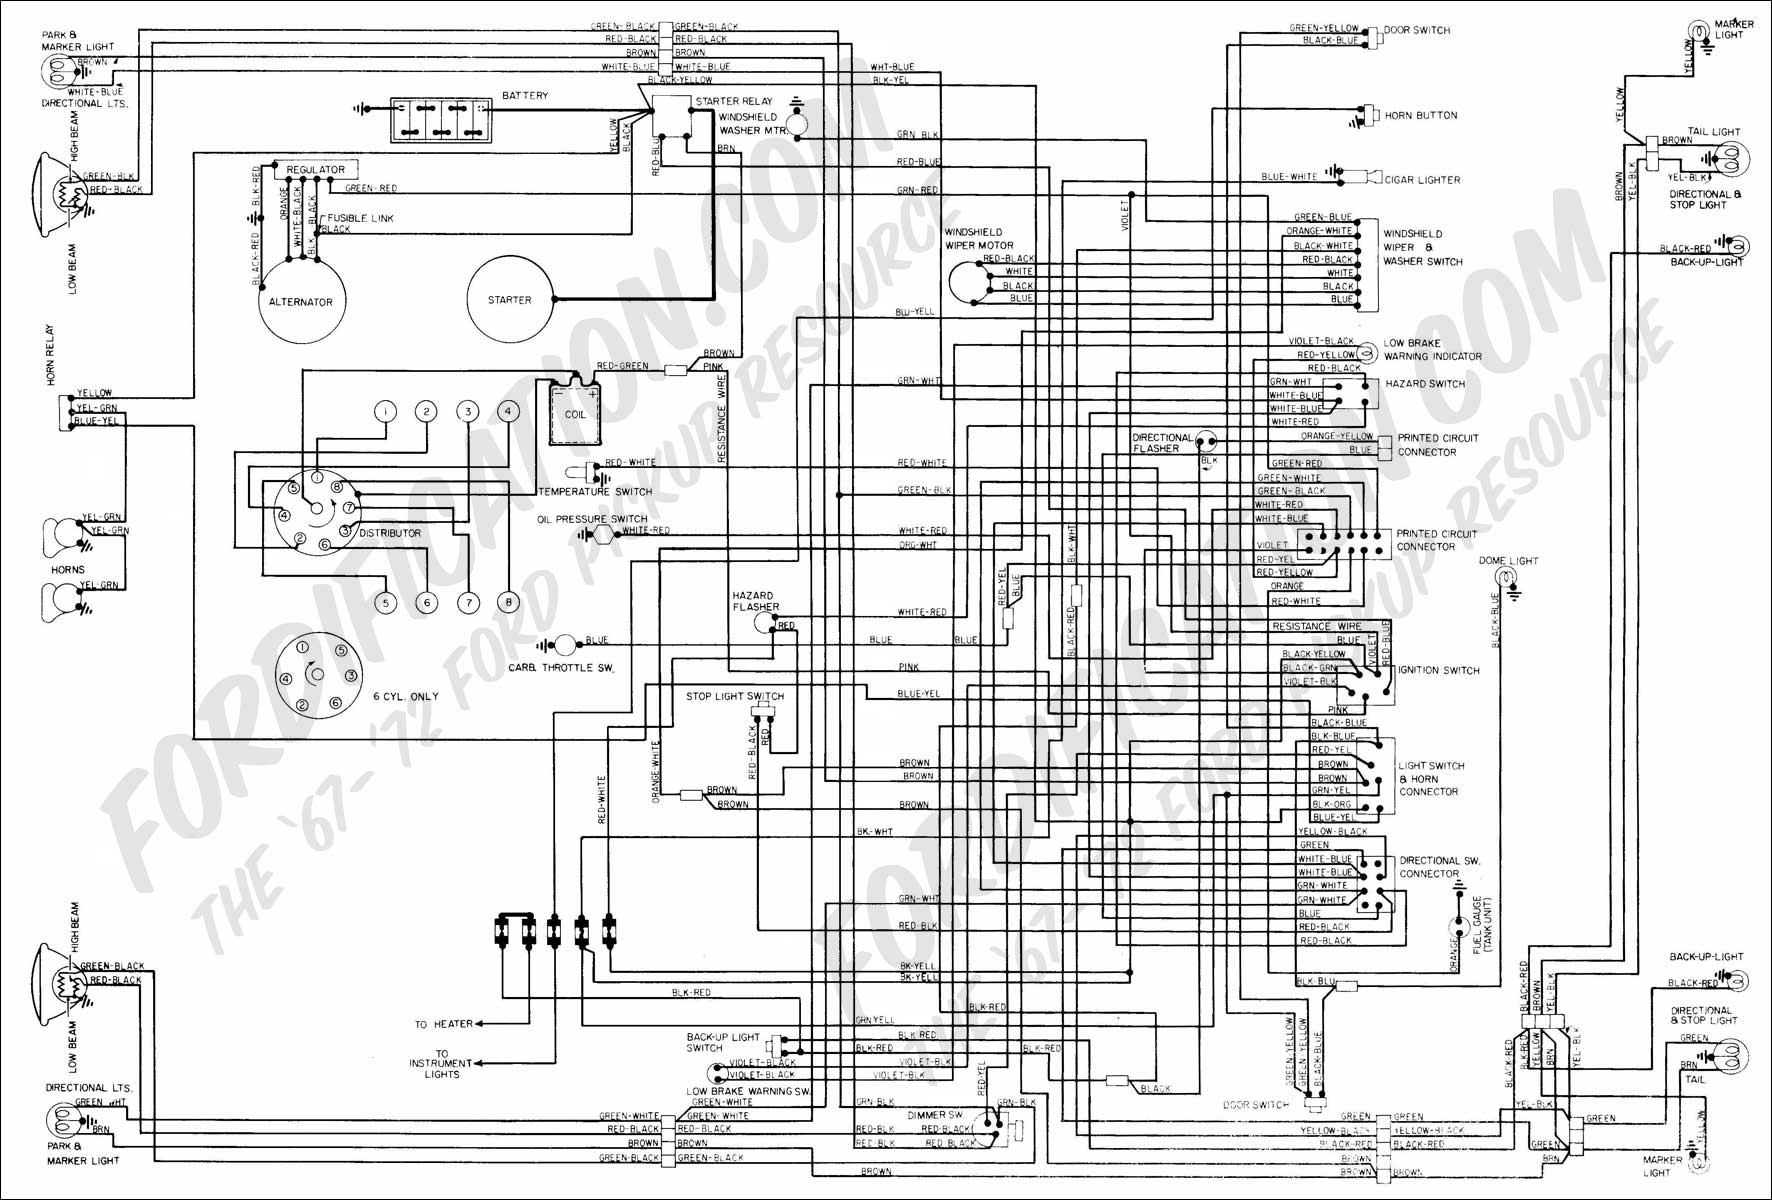 f350 wiring diagram detailed schematics diagram rh keyplusrubber com Ford  Truck Wiring Diagrams 2007 Ford E-450 Wiring Diagram